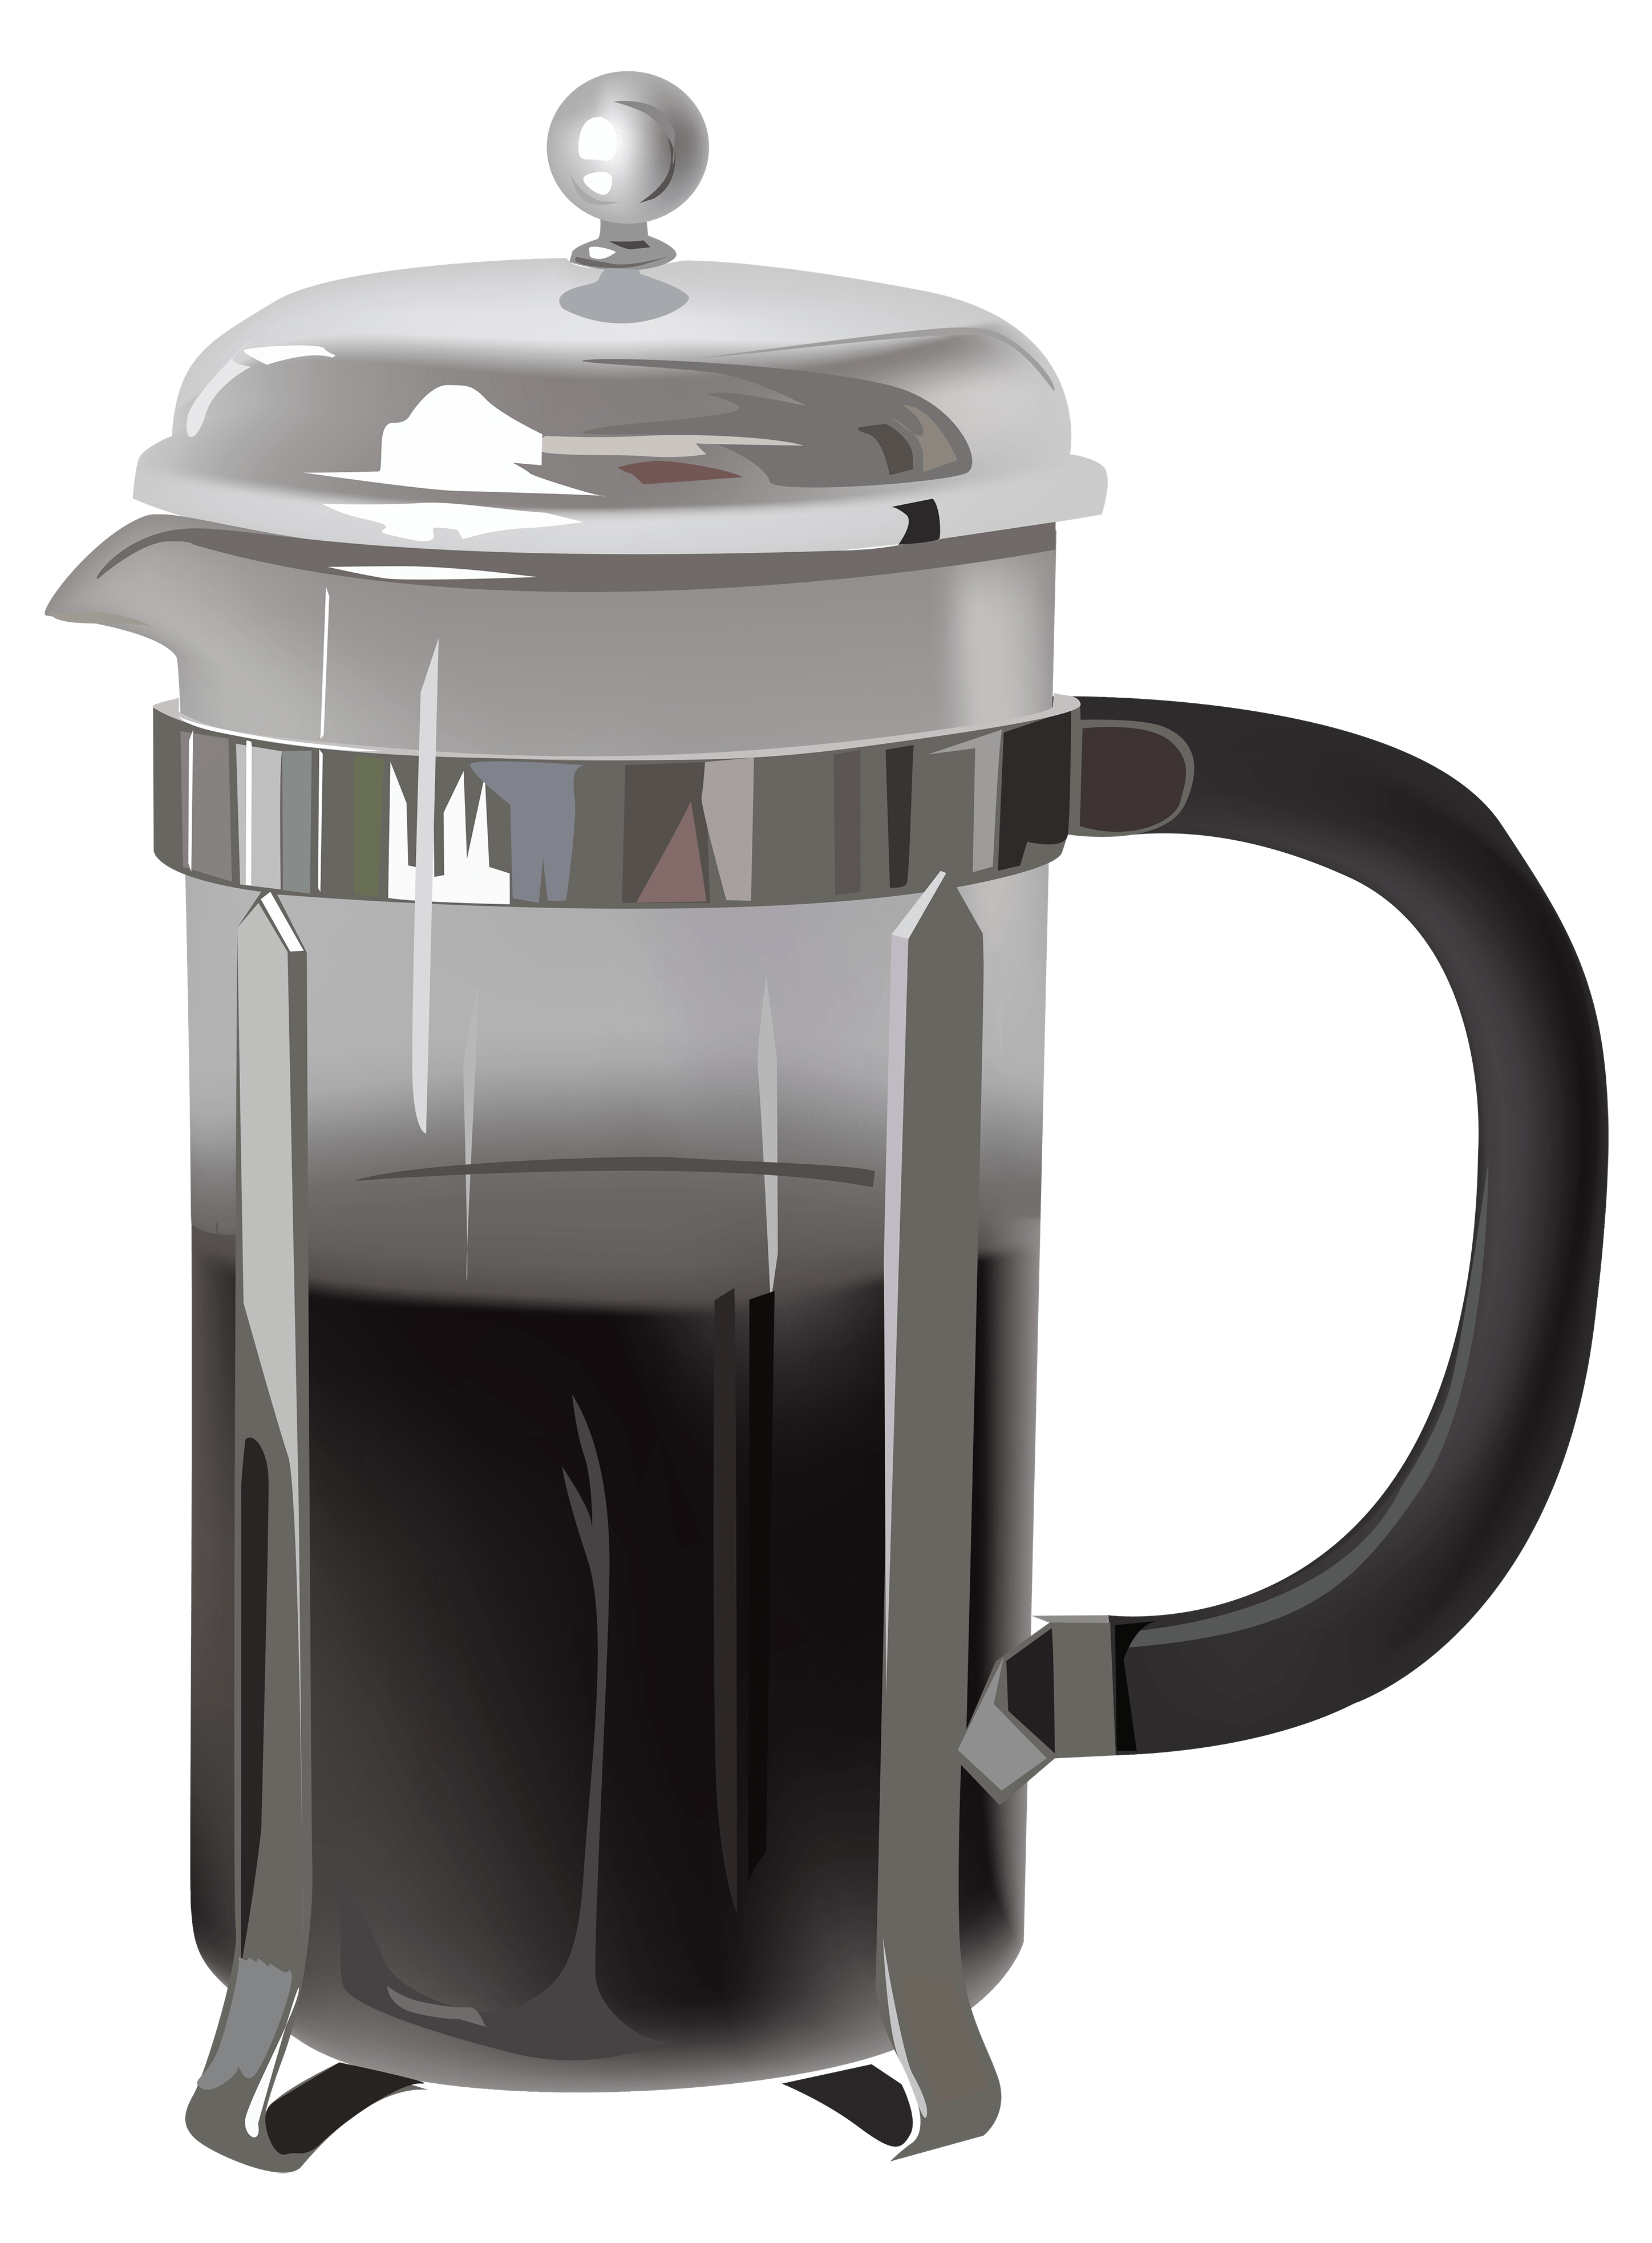 Free Clip Art Coffee Urn Free Coffee Pot Cliparts Download Free Clip Art Free